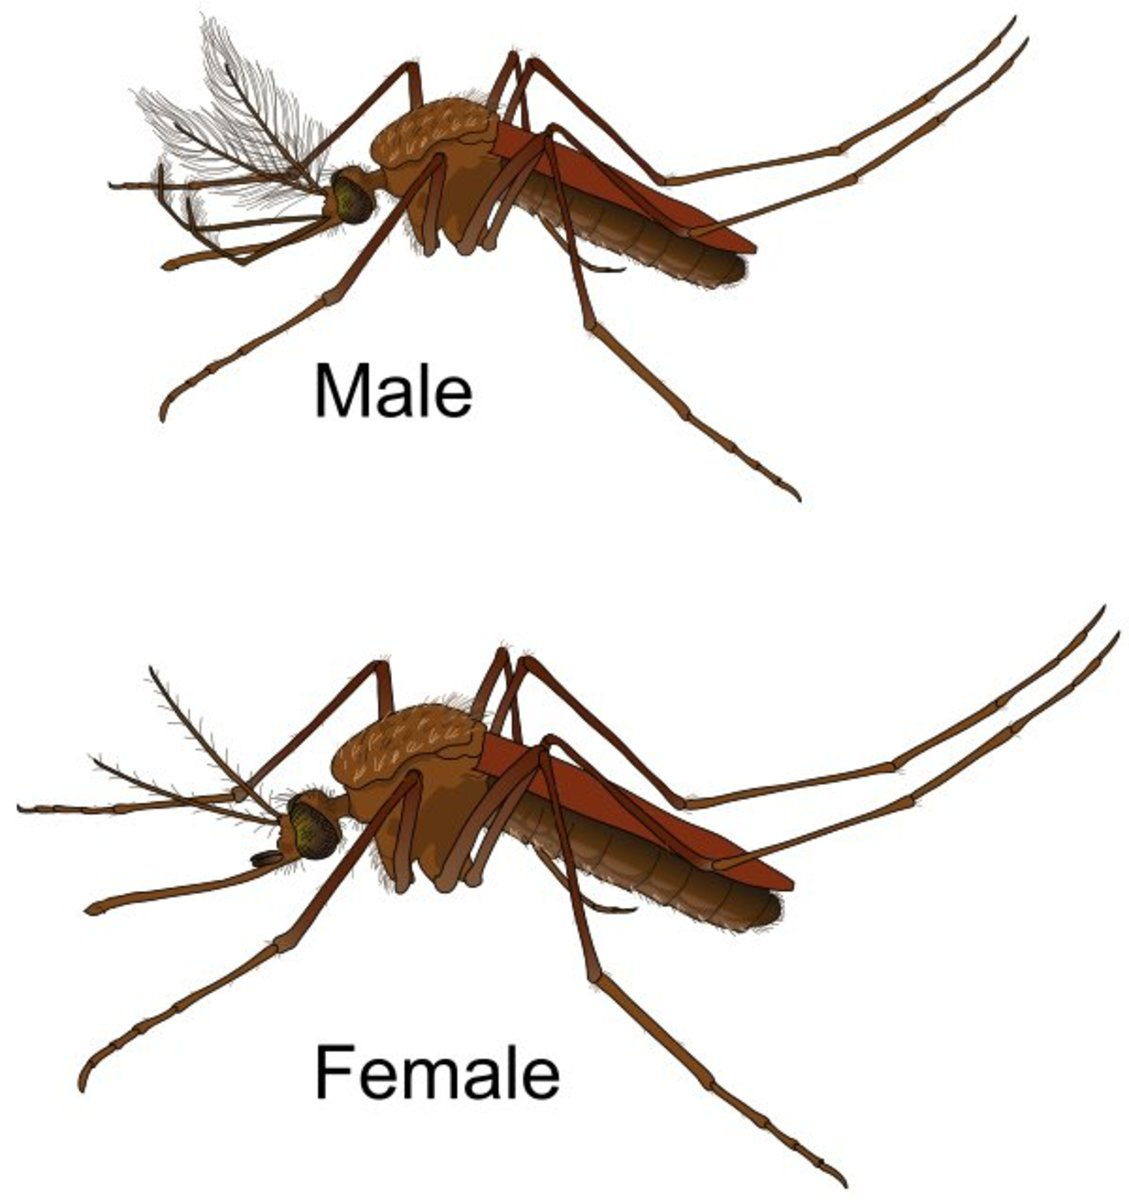 Male and female mosquitoes.